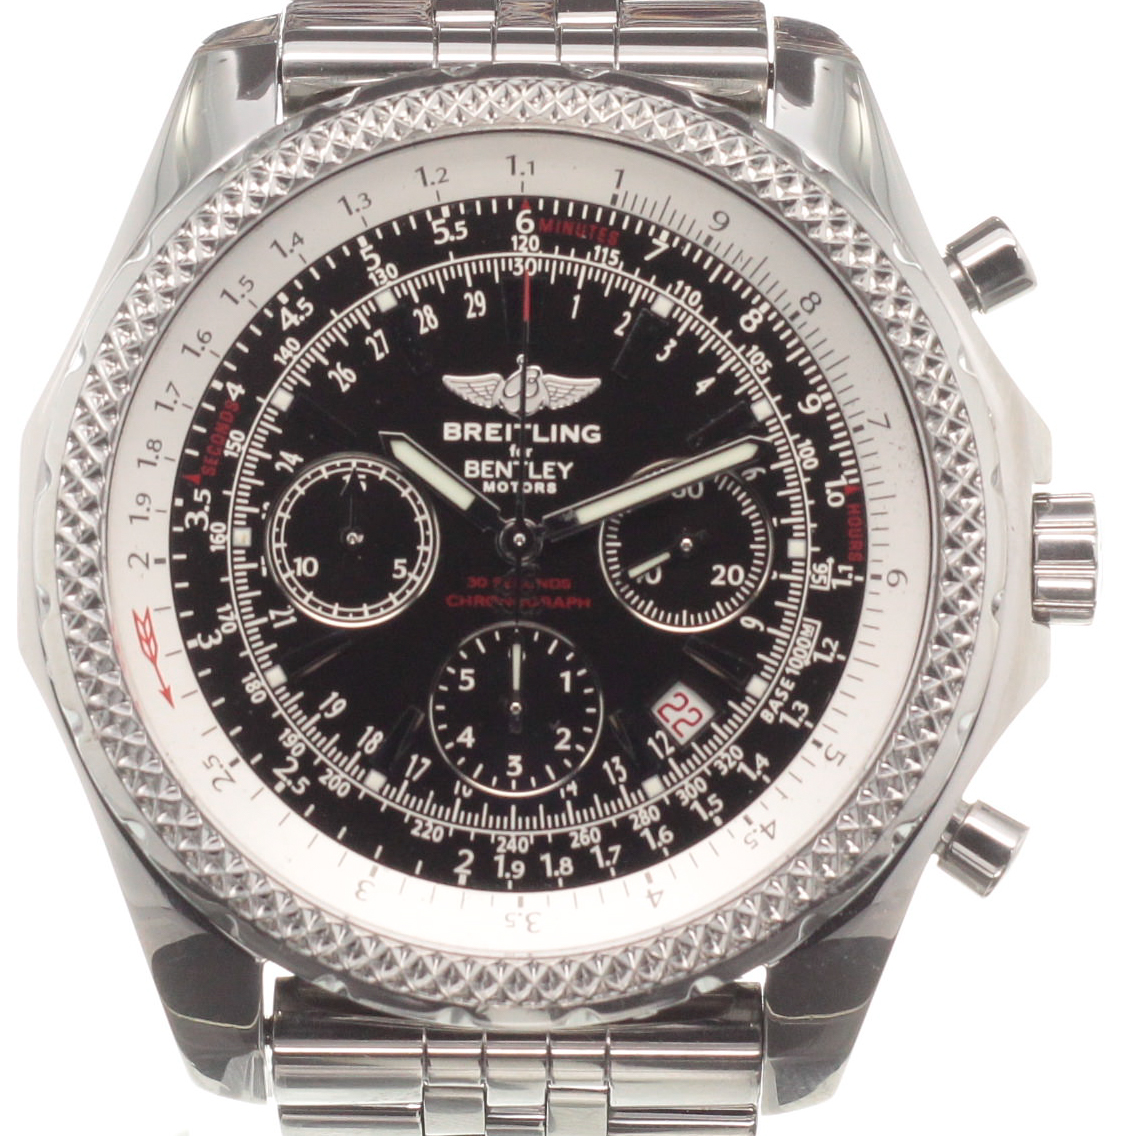 Breitling Bentley A25362 For Sale